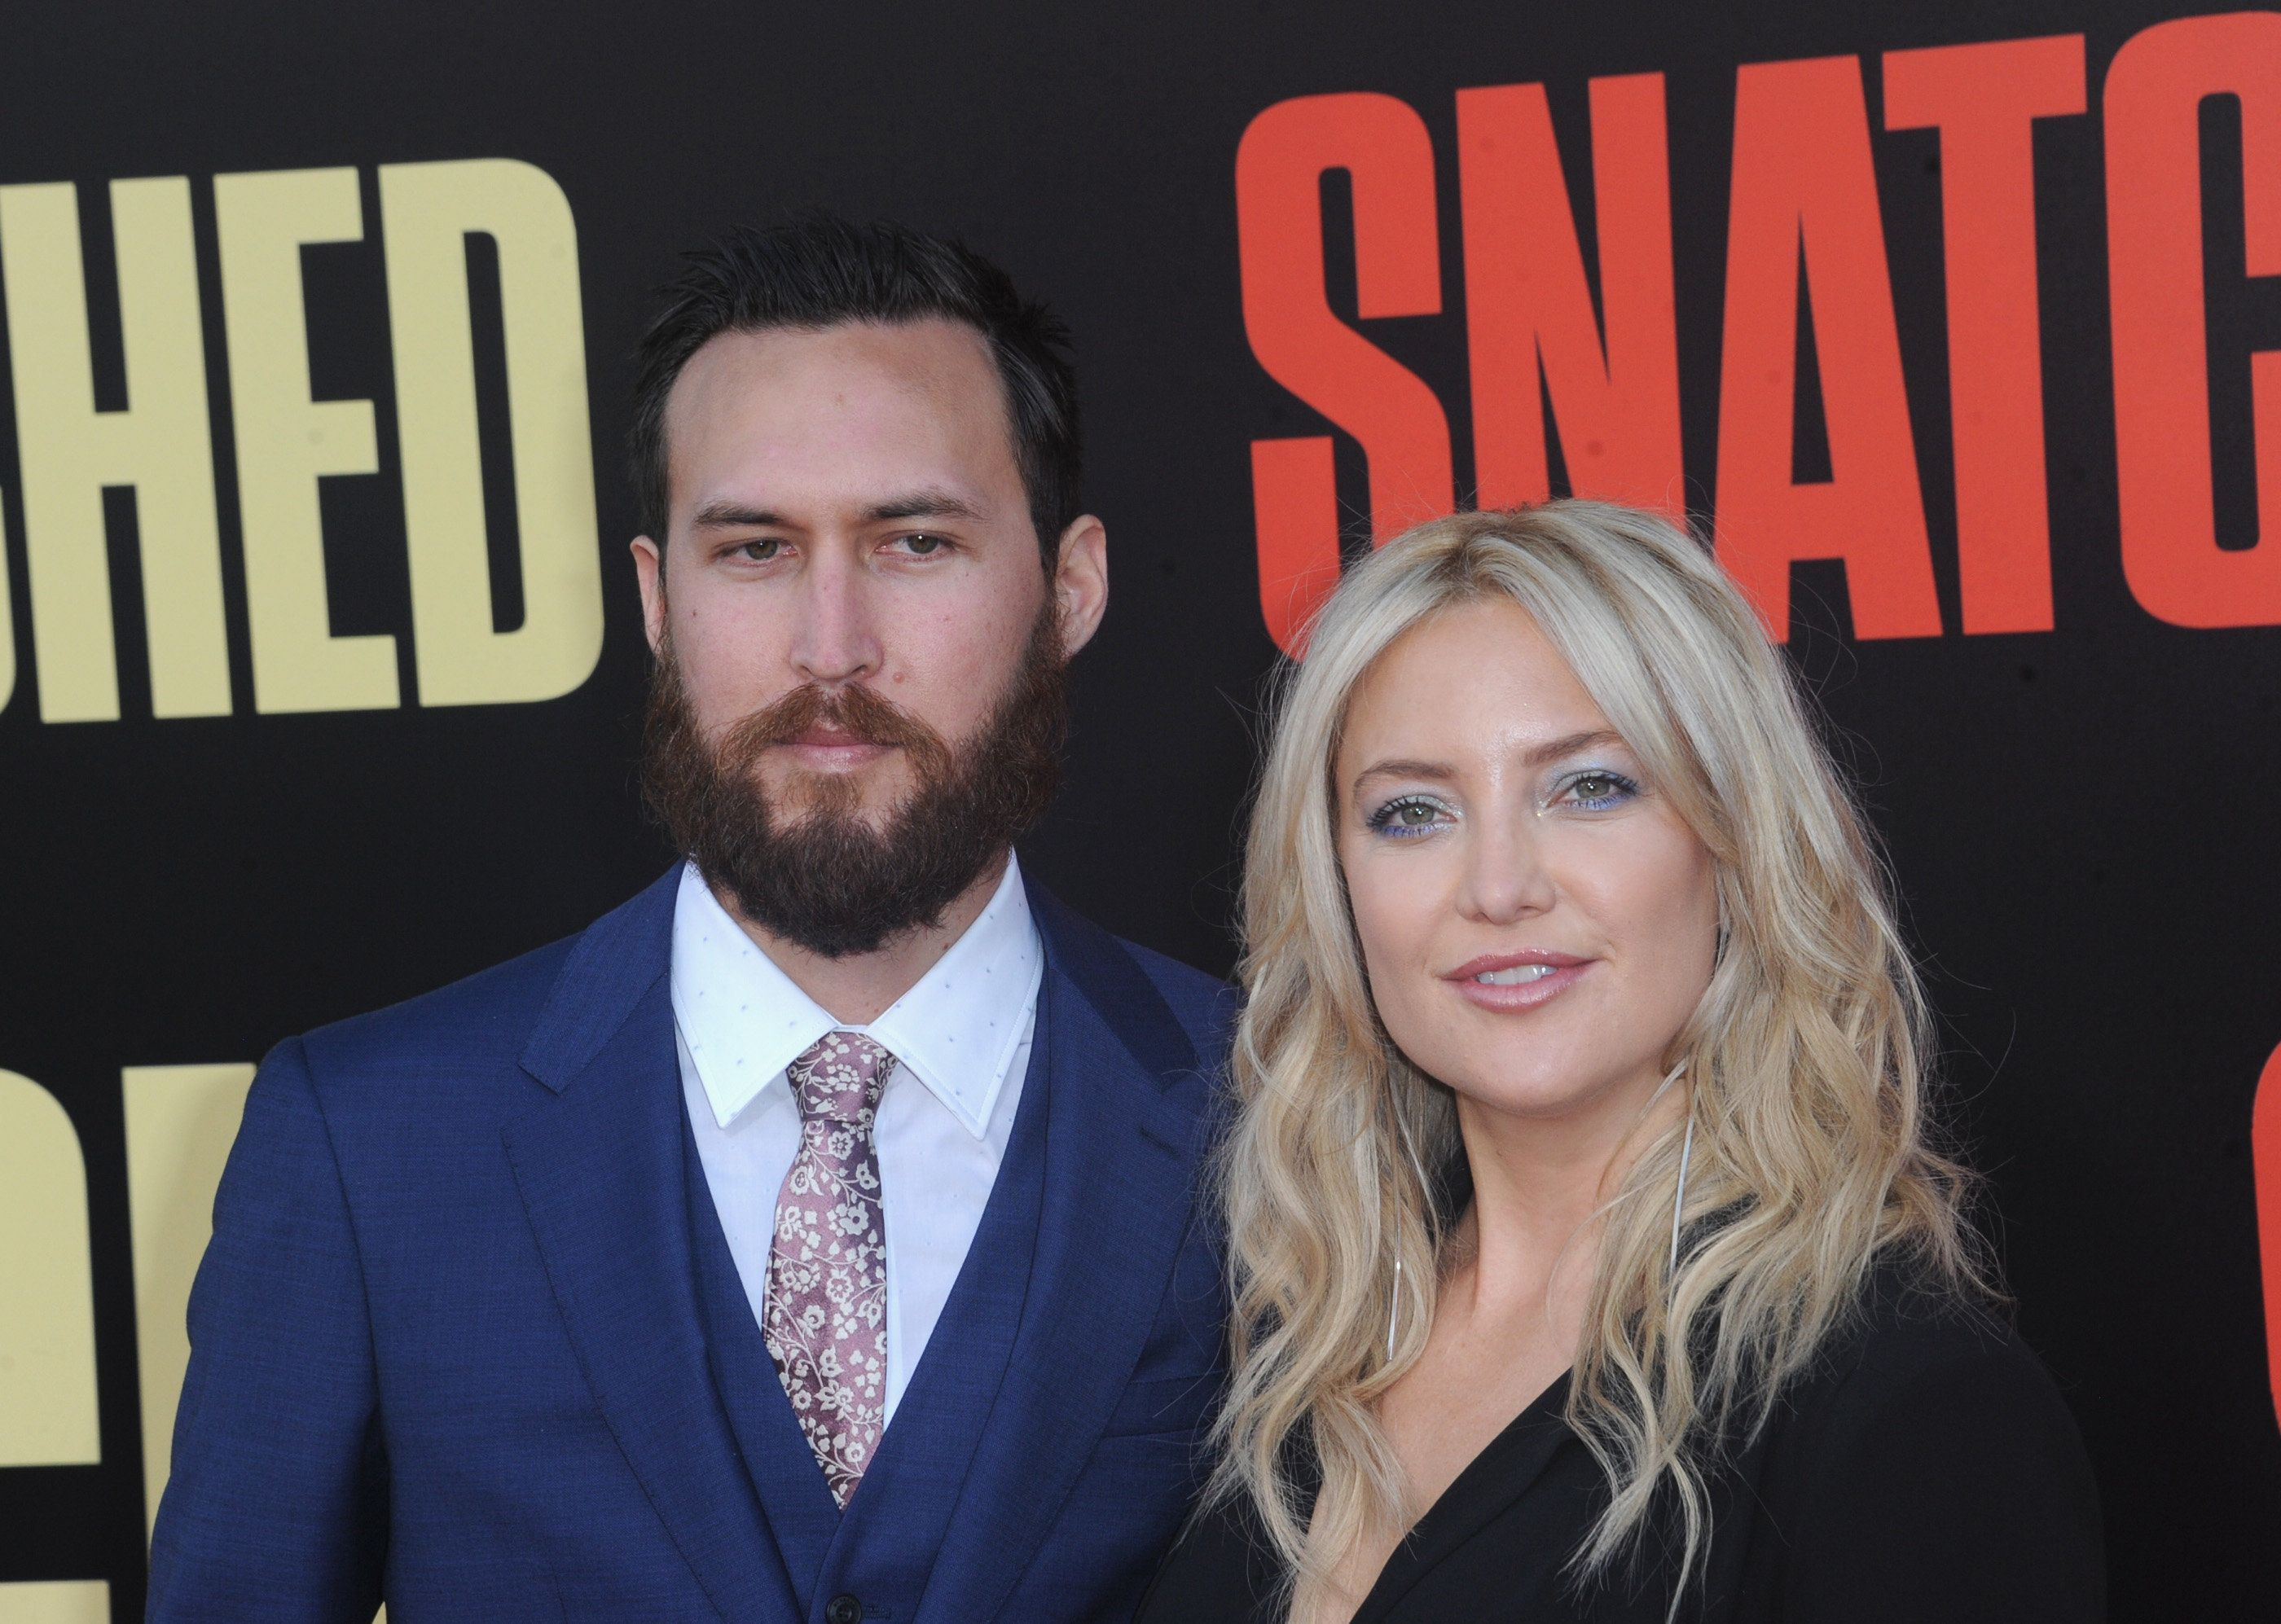 Kate Hudson Announces She's Pregnant With Her Third Child, A Baby Girl